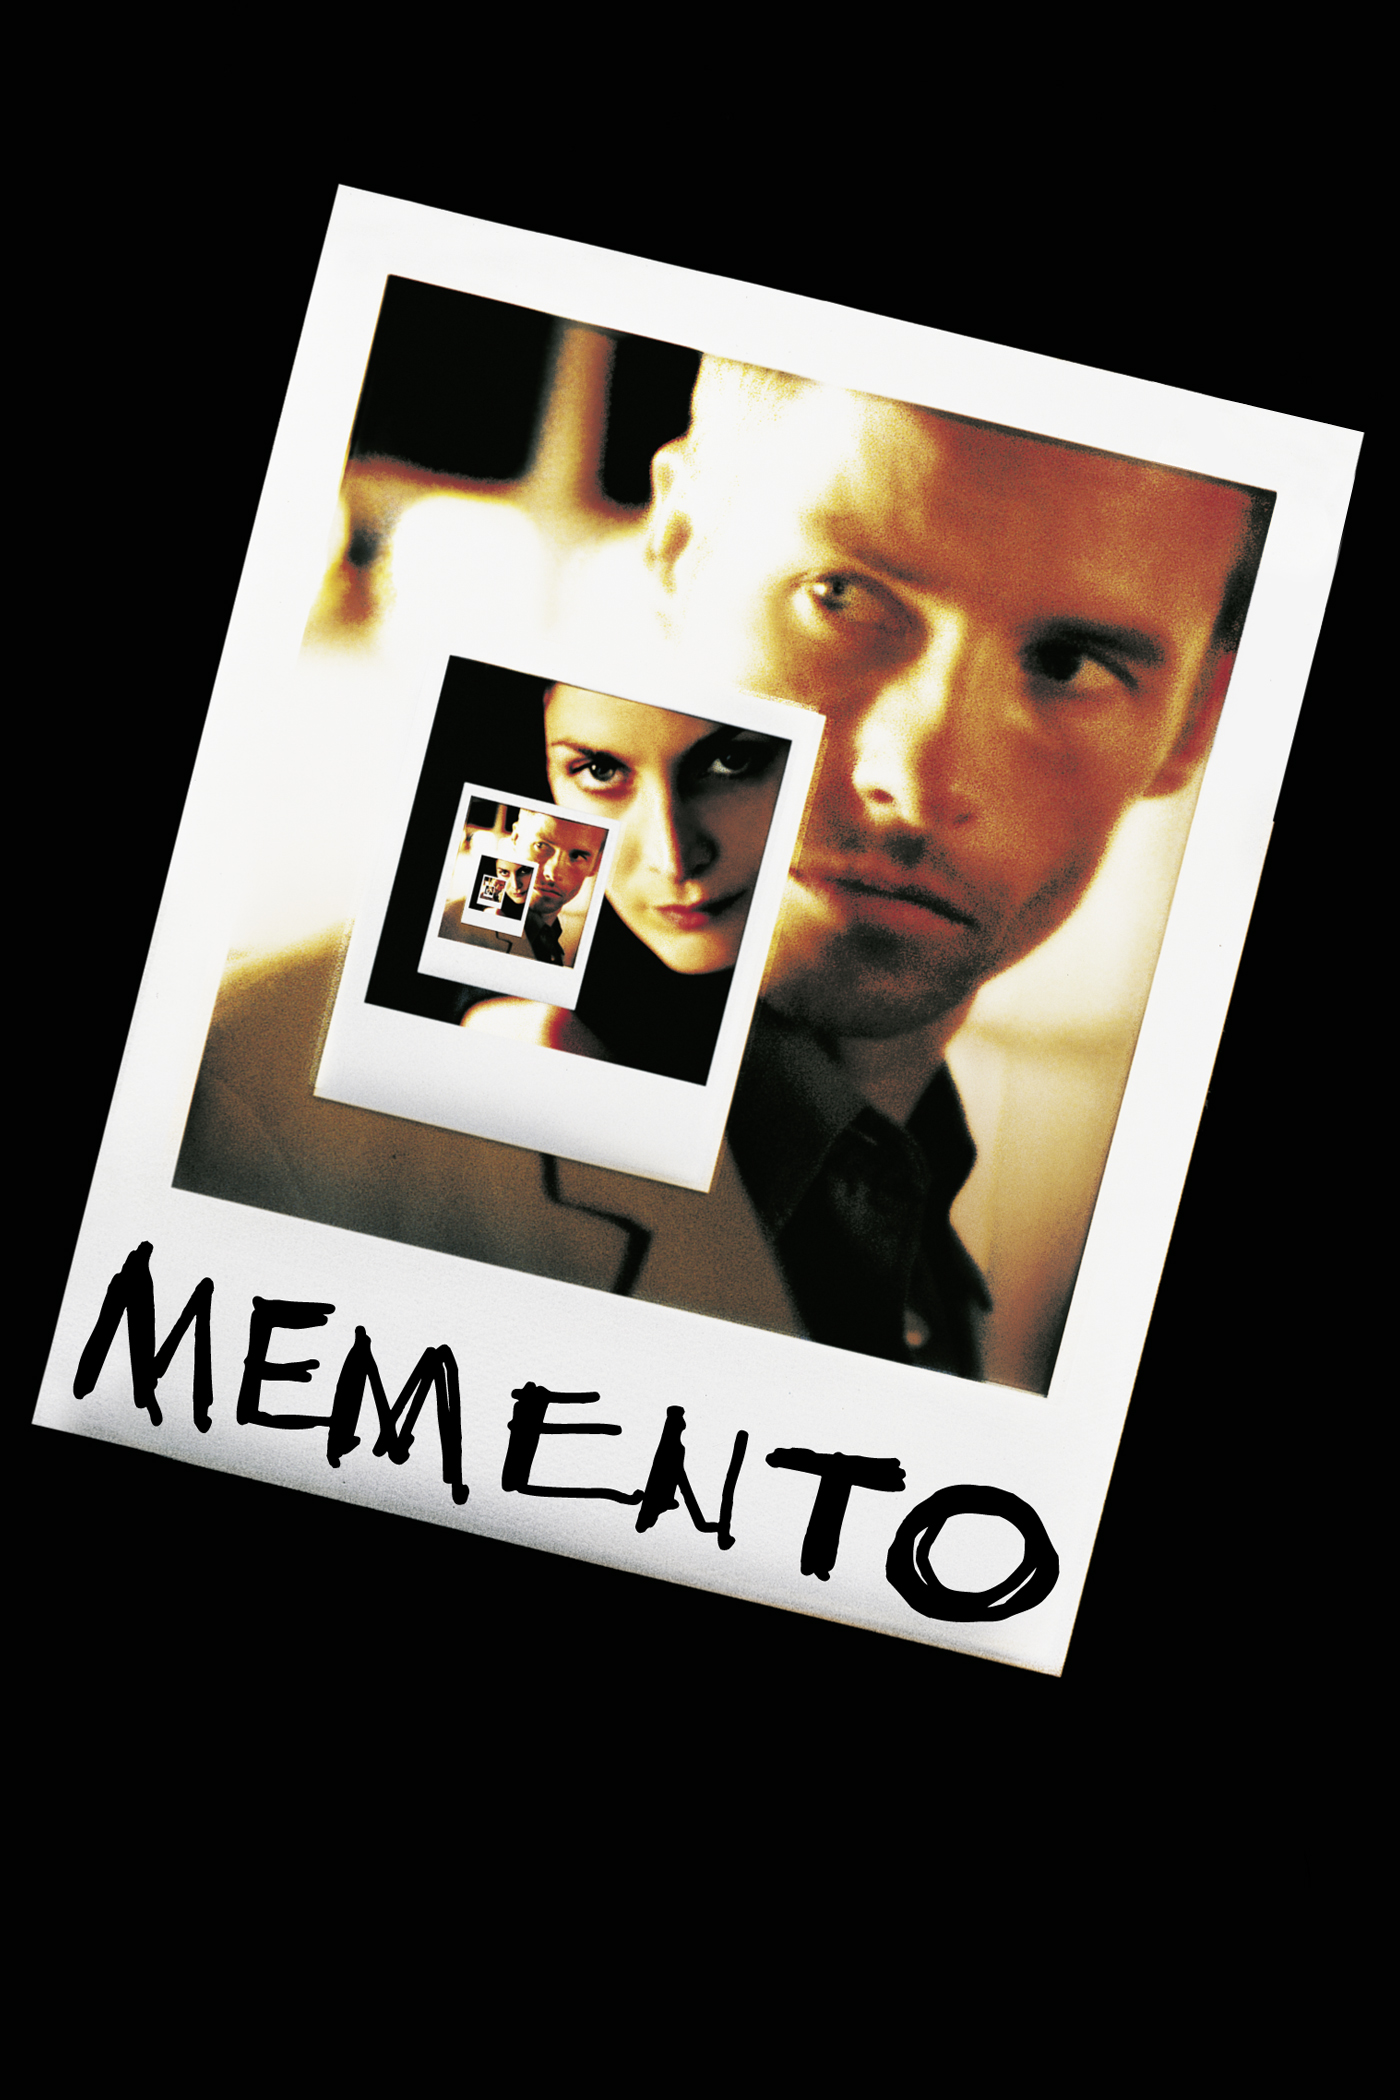 Memento Polaroid Viewing gallery for - mementoMemento Polaroid